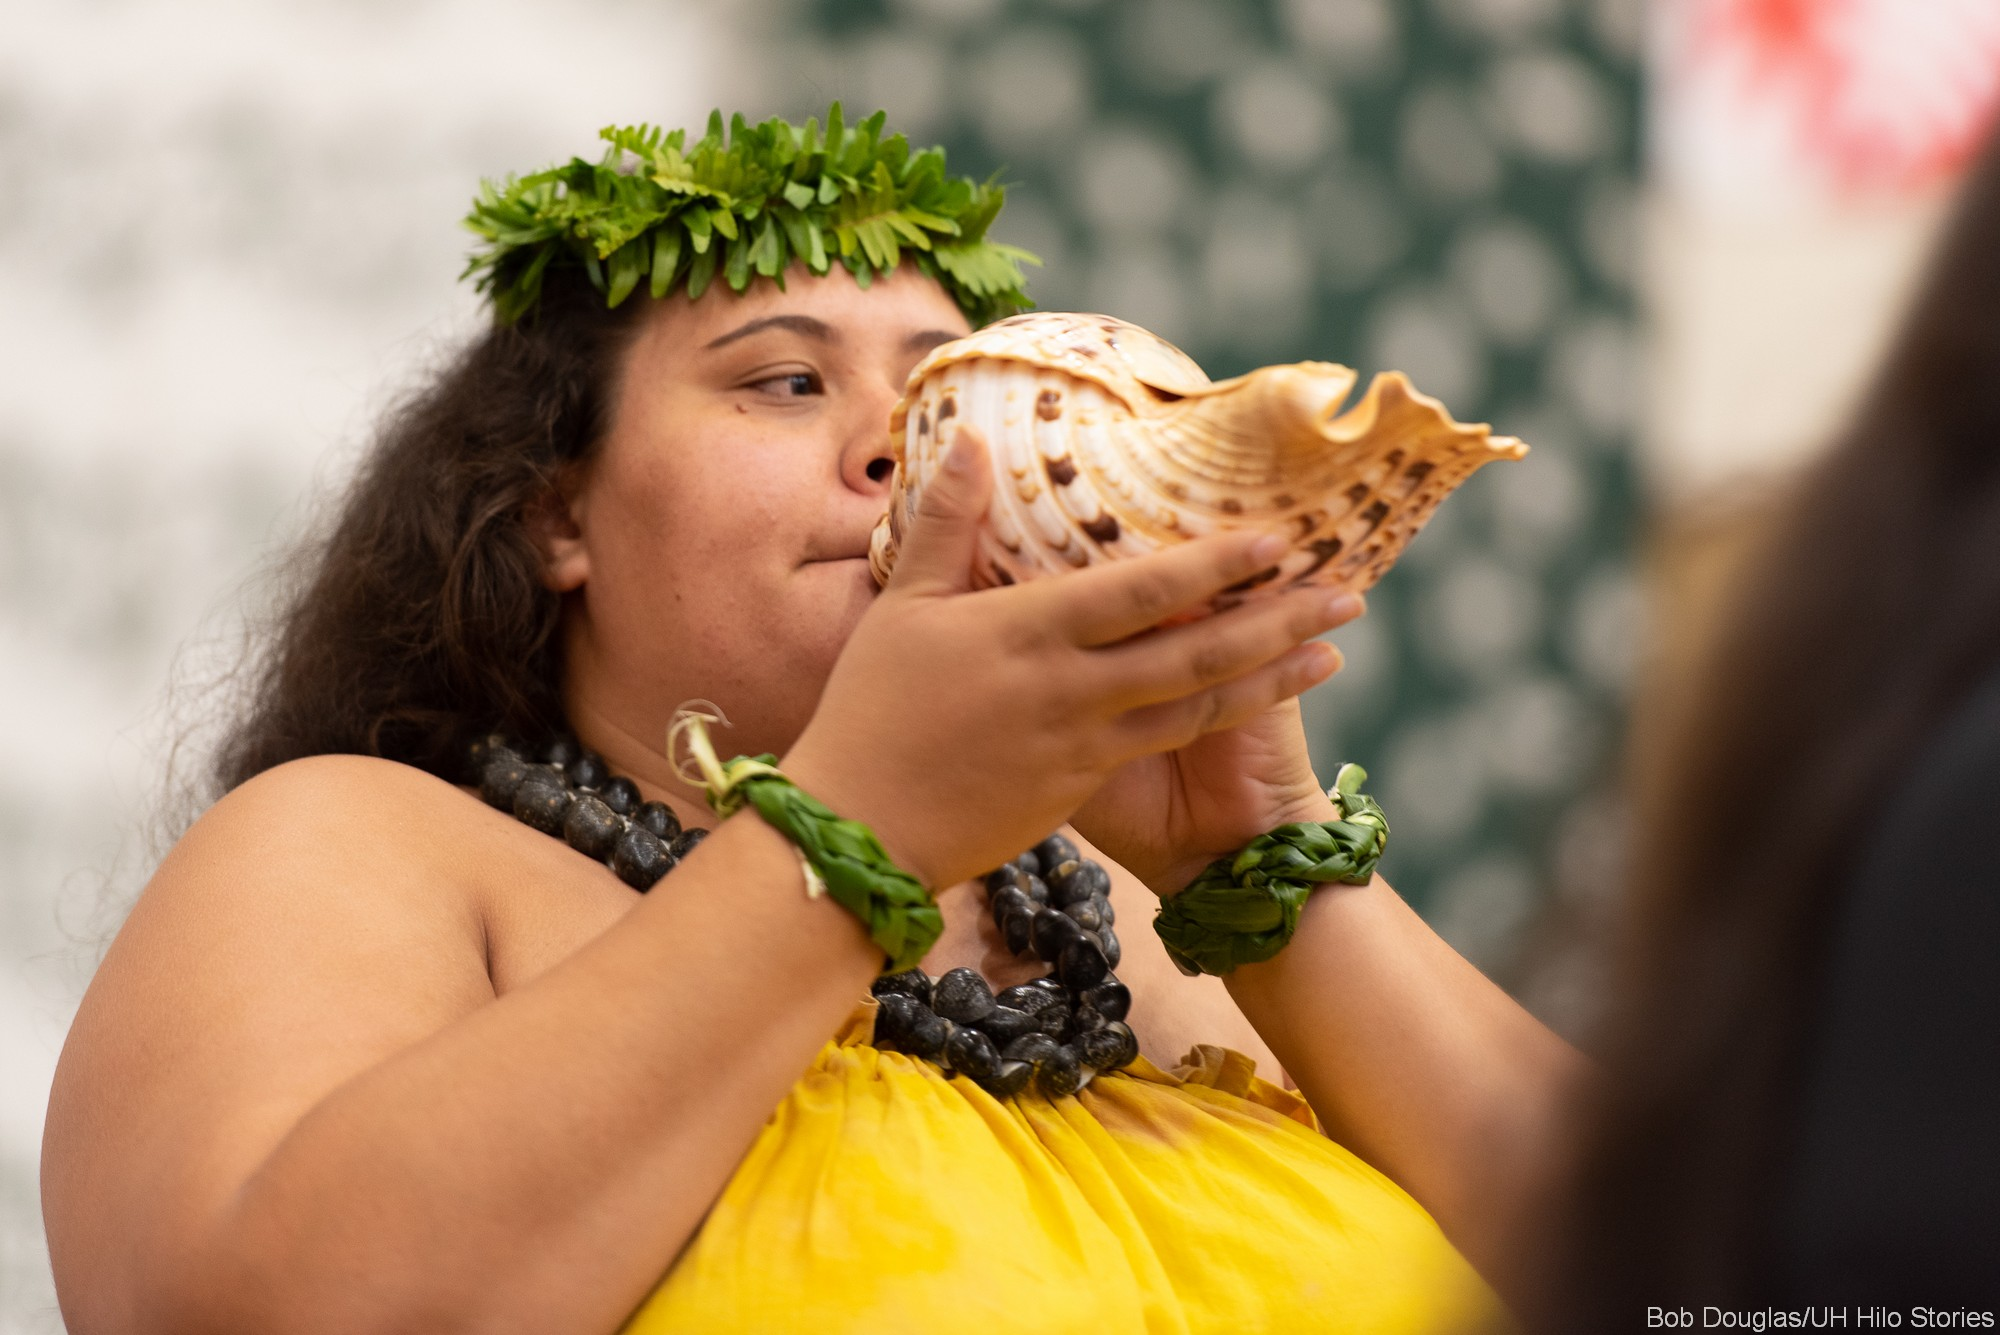 Woman blows conch shell at opening ceremony.